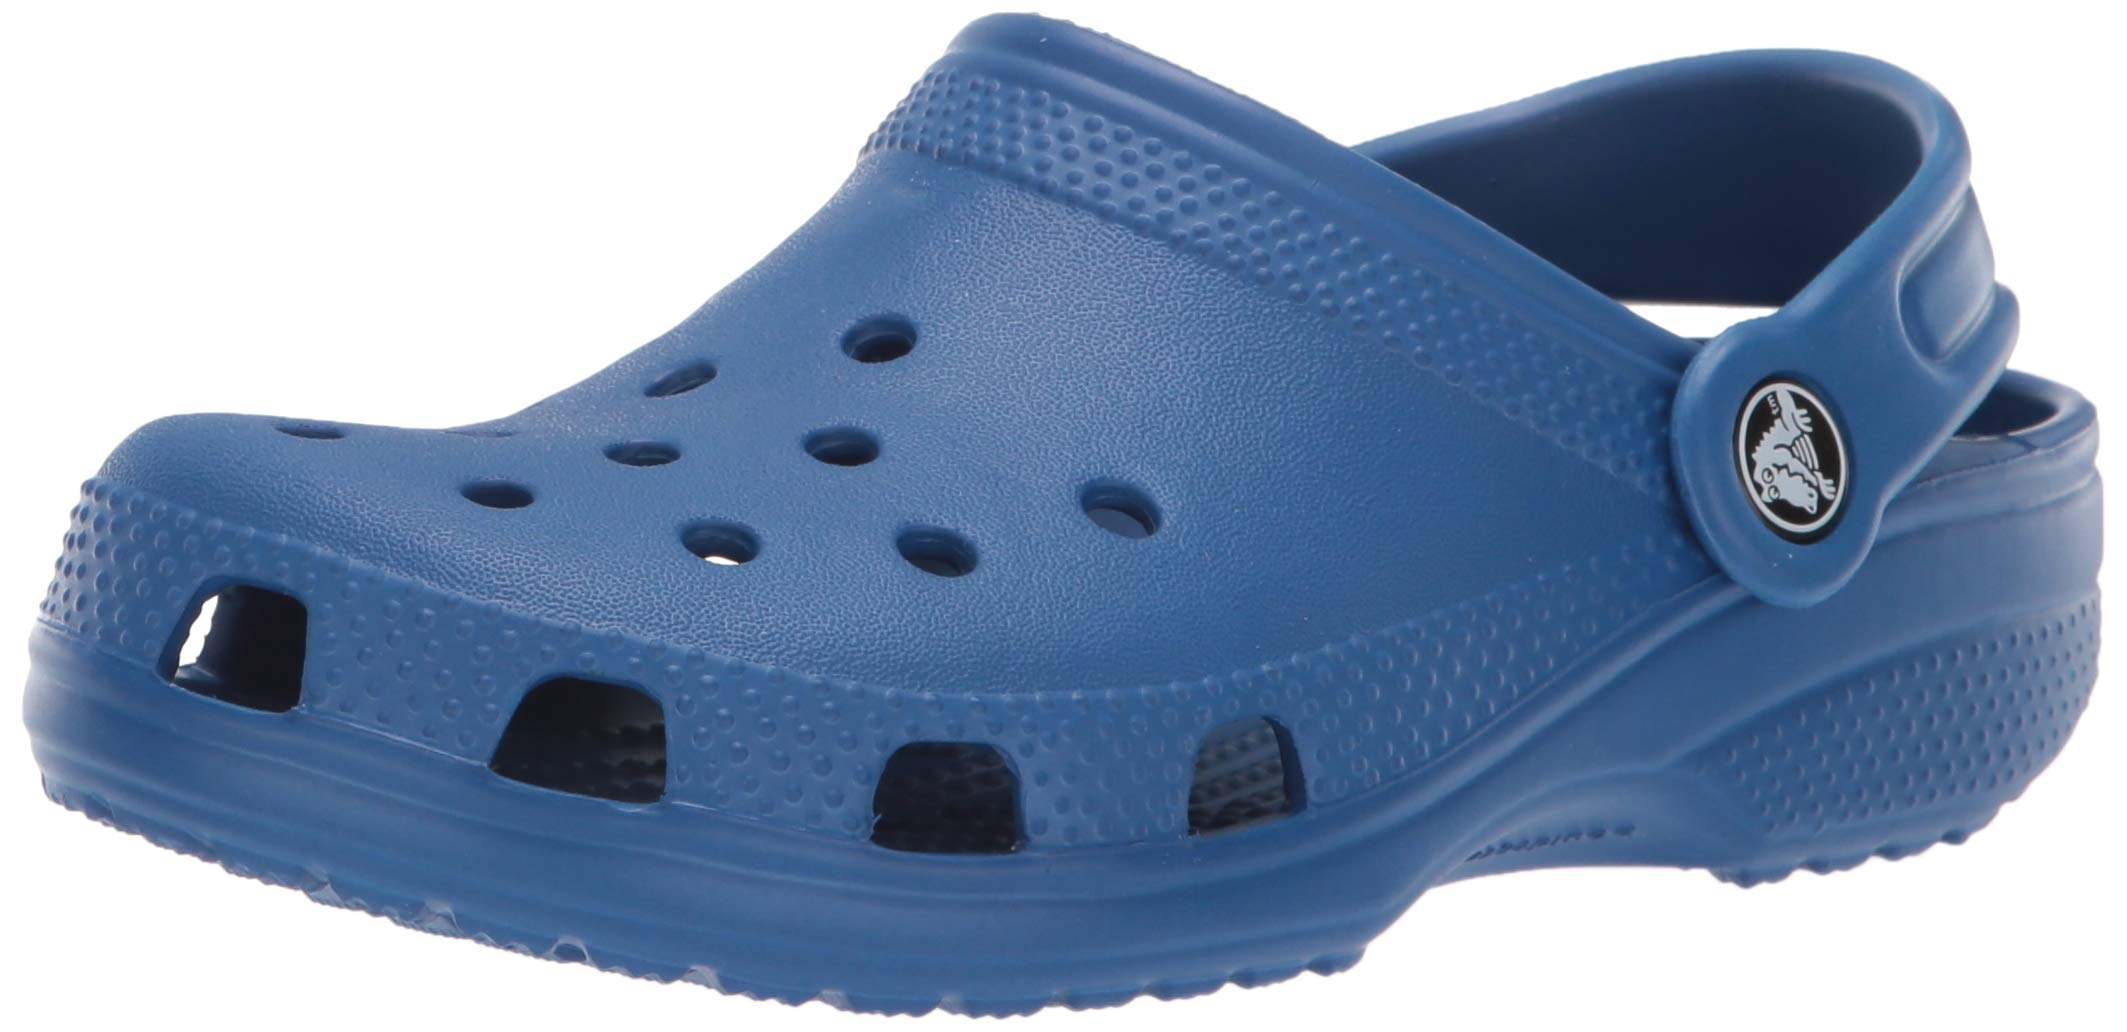 Crocs Kids' Classic Clog, blue jean, 6 M US Toddler